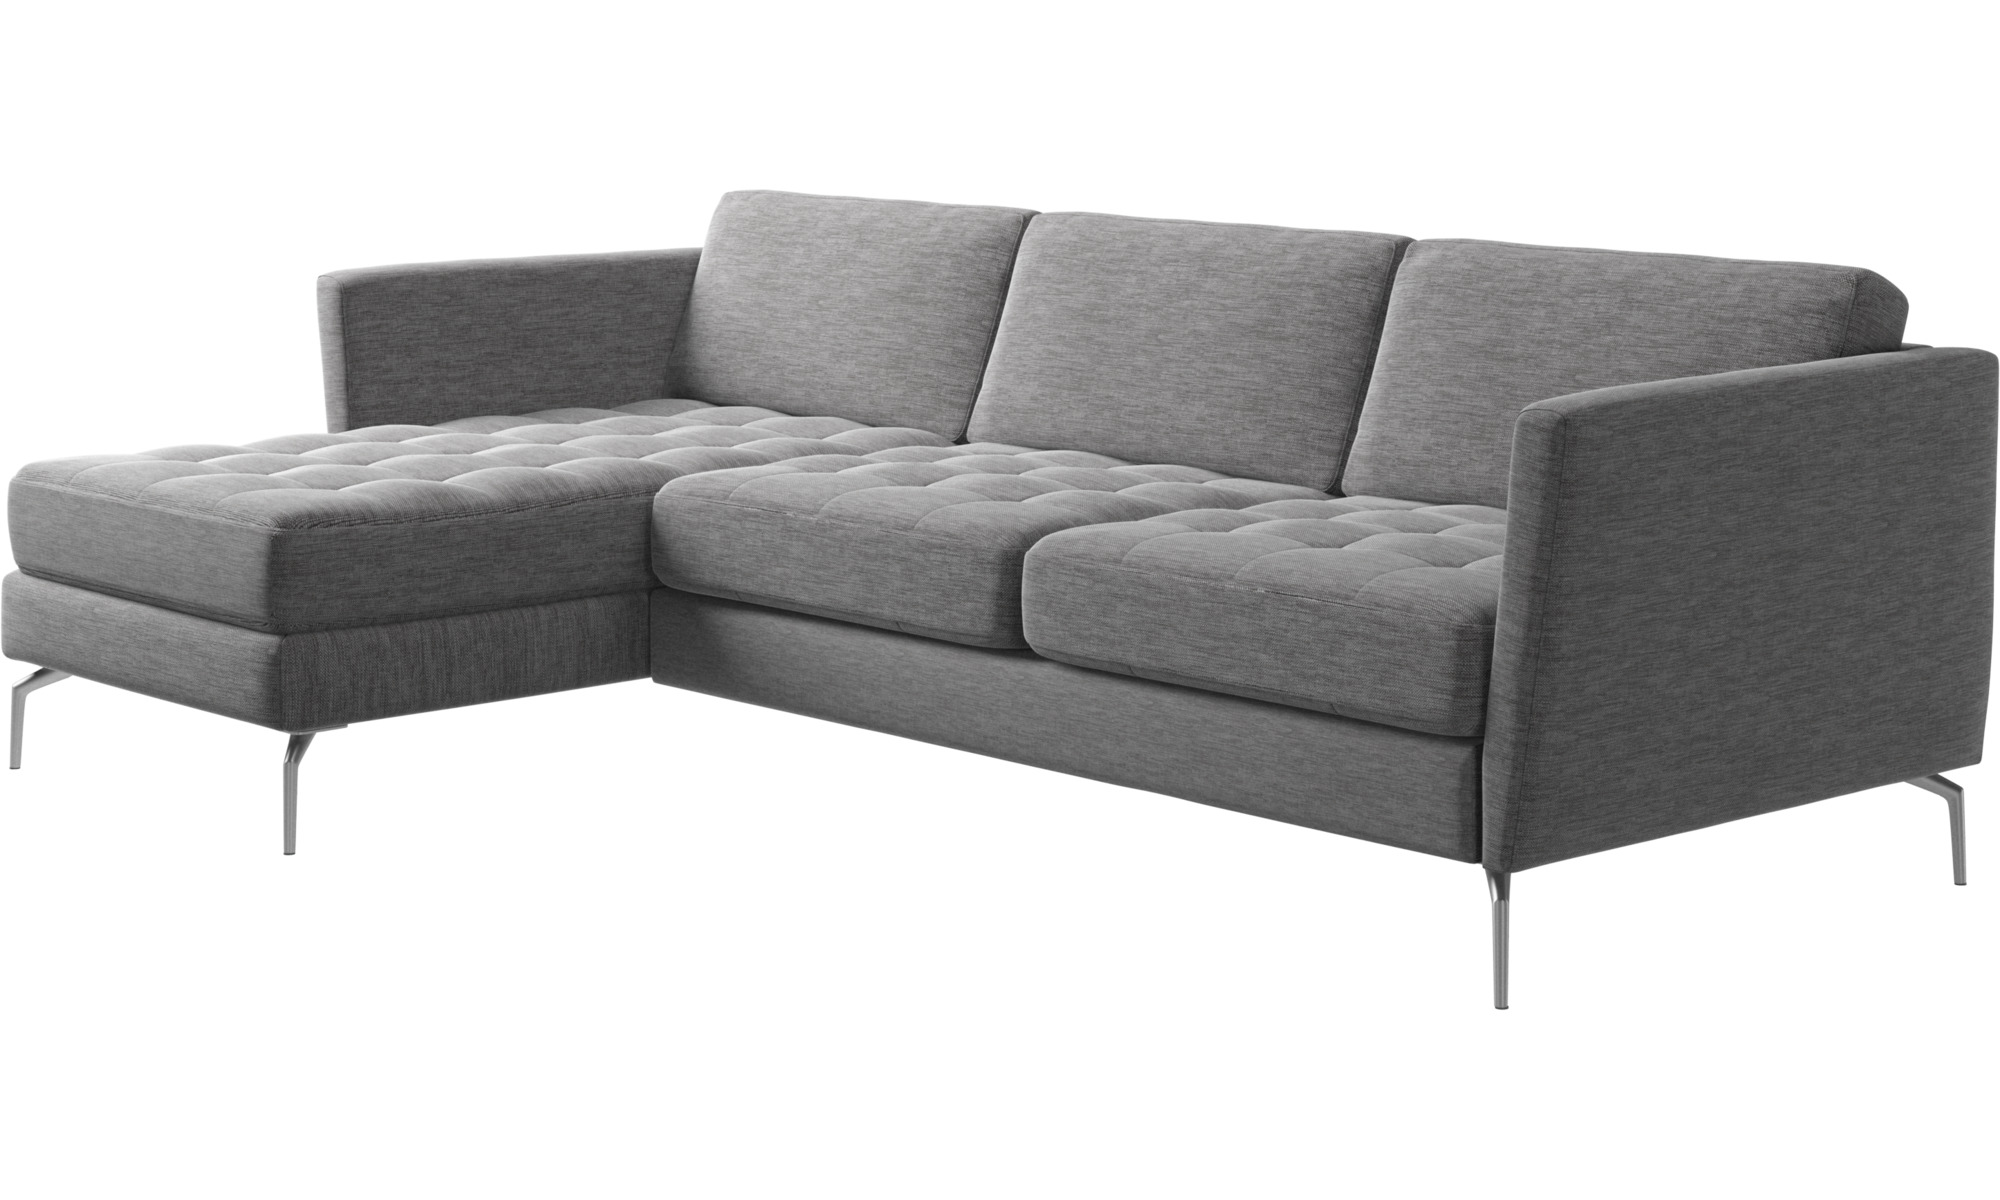 chaise lounge sofas osaka sofa with resting unit tufted seat boconcept. Black Bedroom Furniture Sets. Home Design Ideas